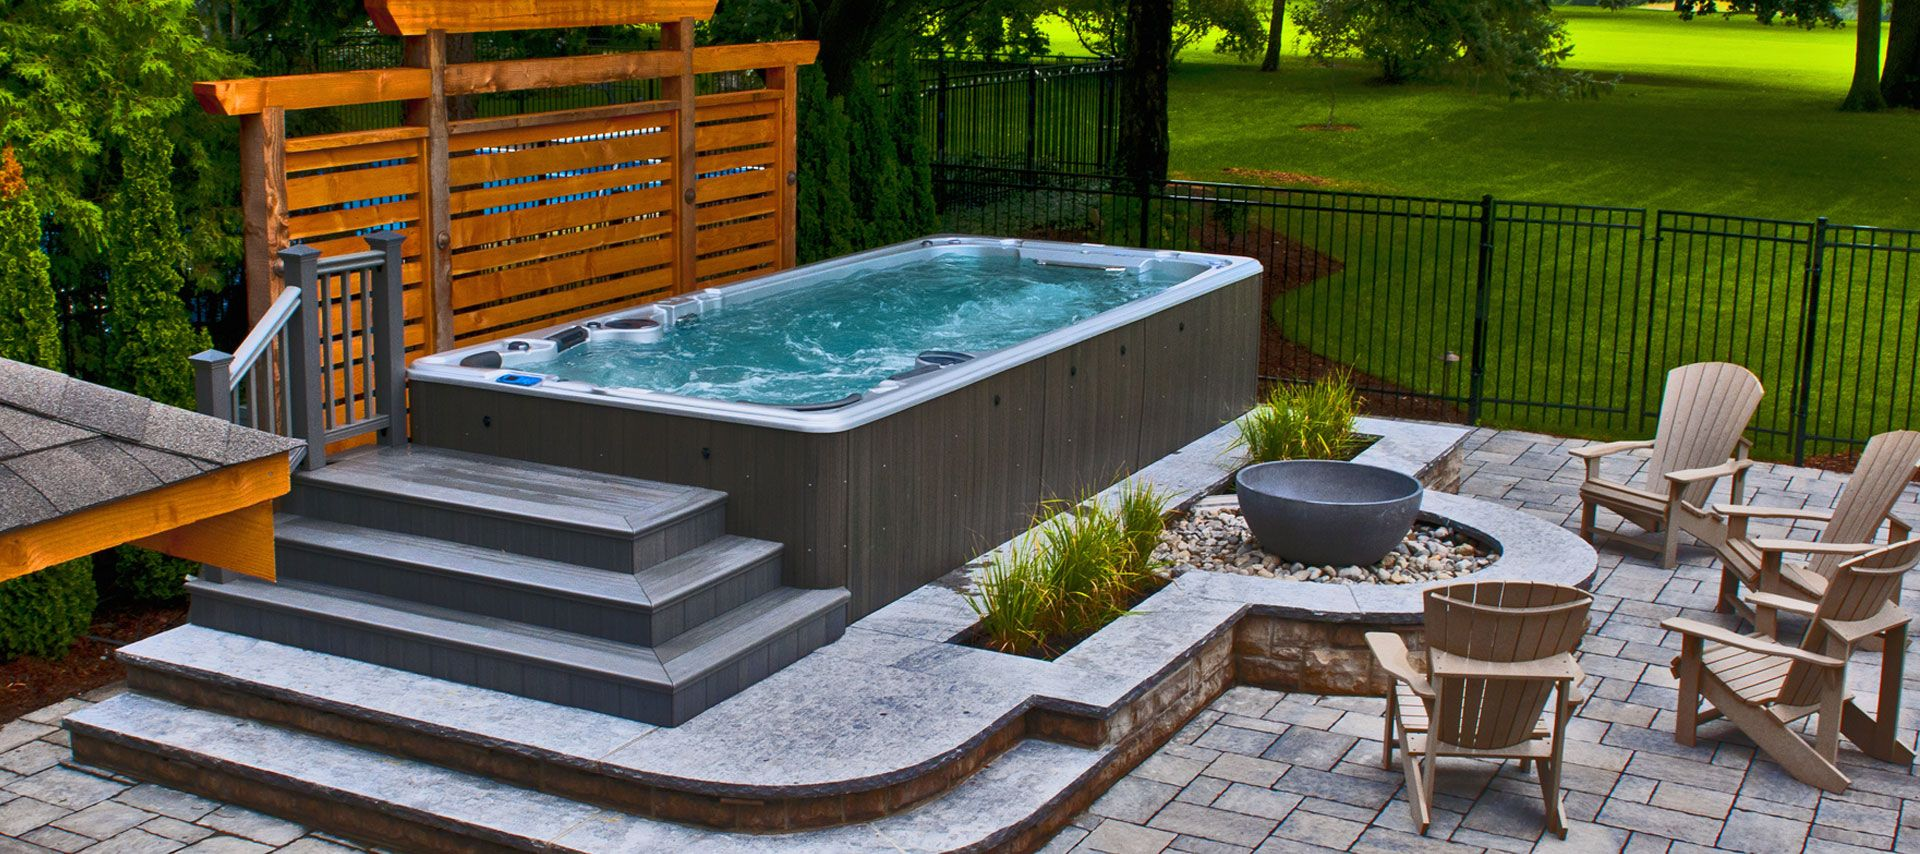 Hydropool Hot Tubs Swim Spas And Accessories Jacuzzi